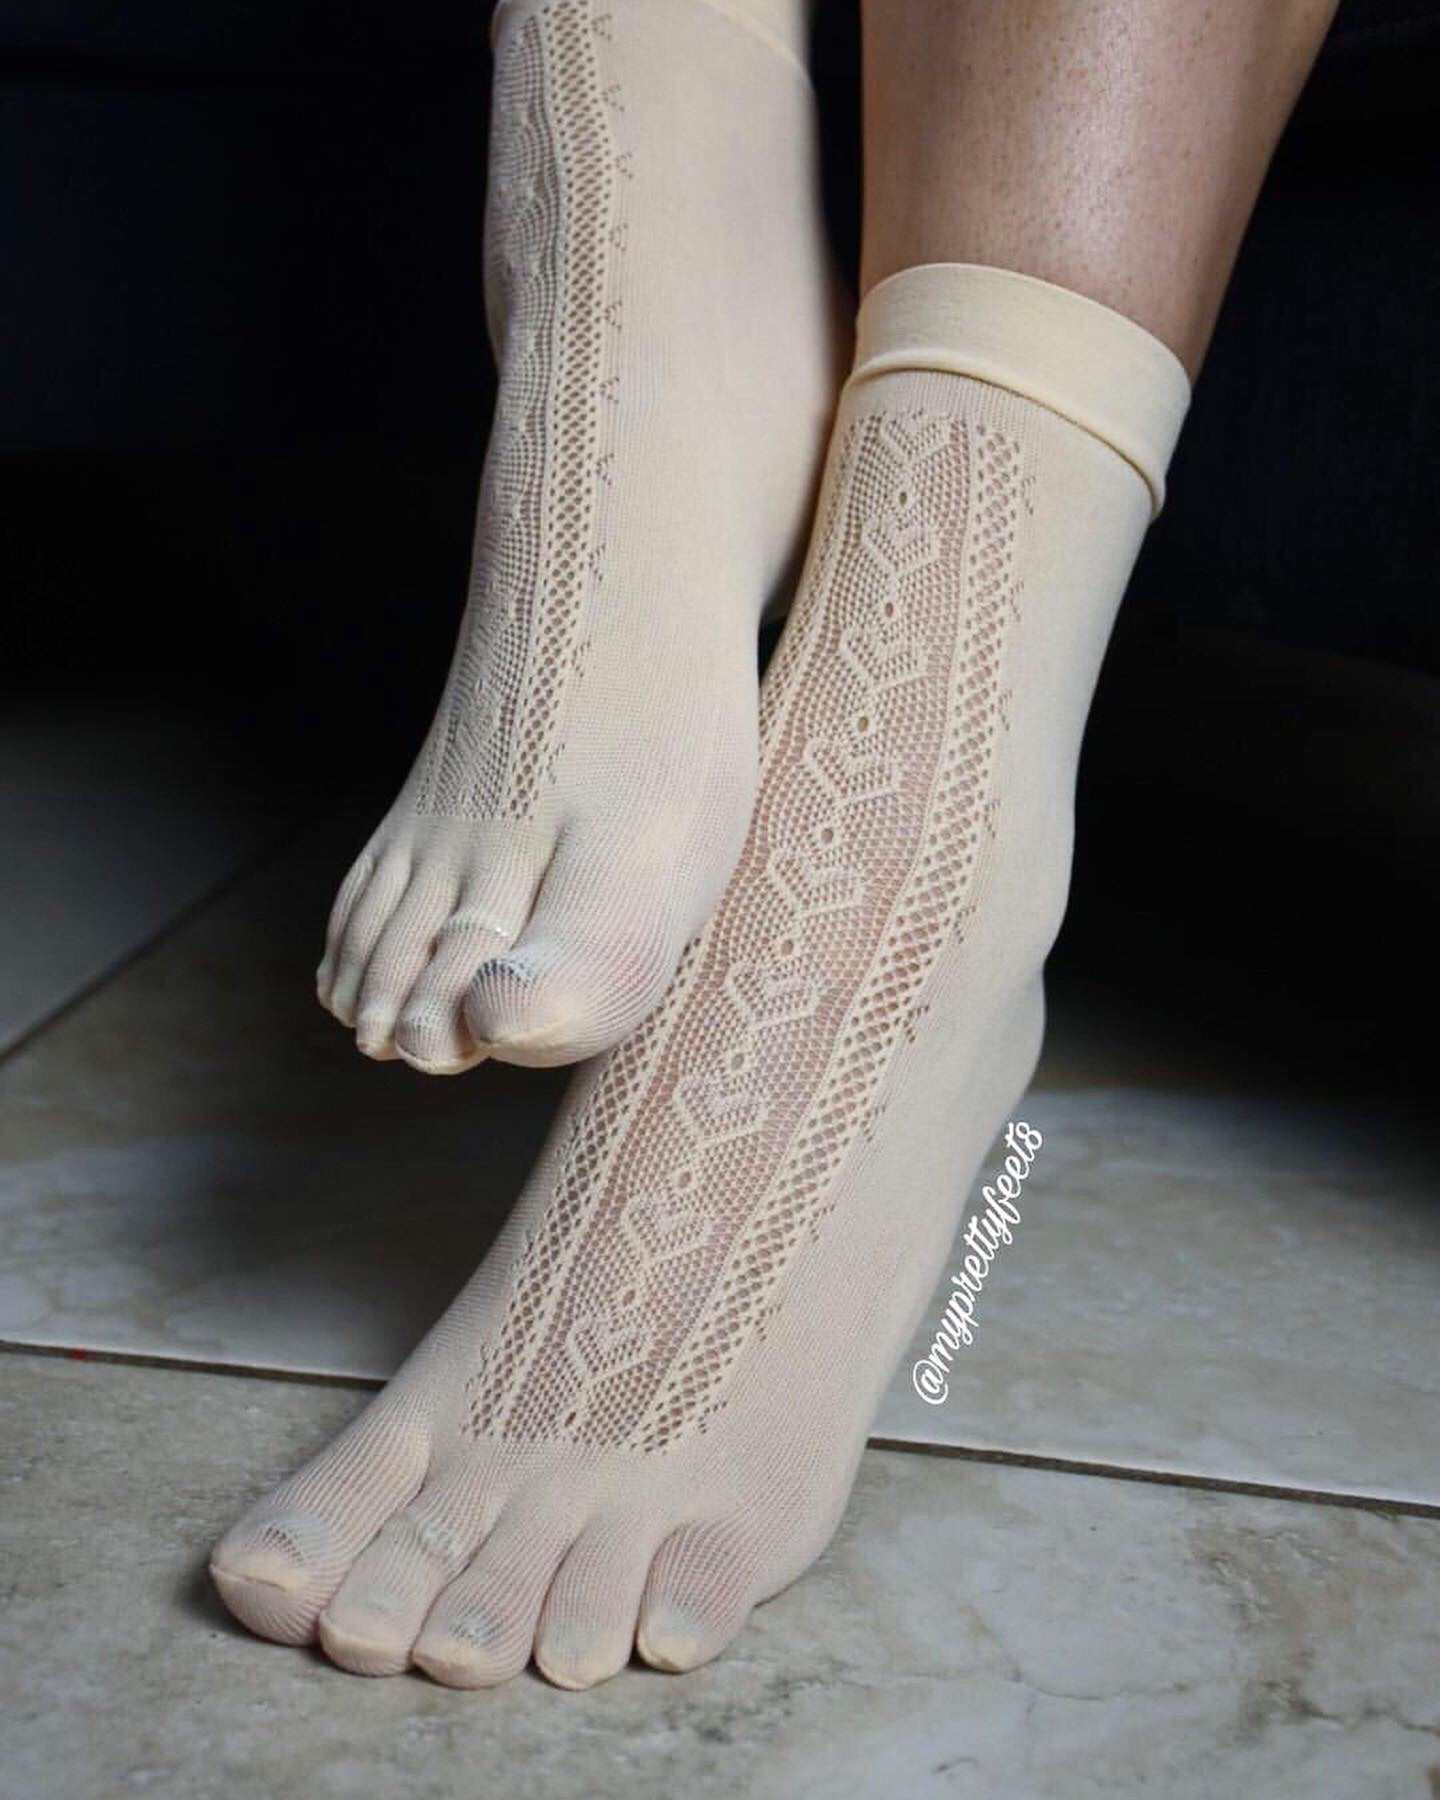 Heart Toe Mesh Socks - Global Trendz Fashion®